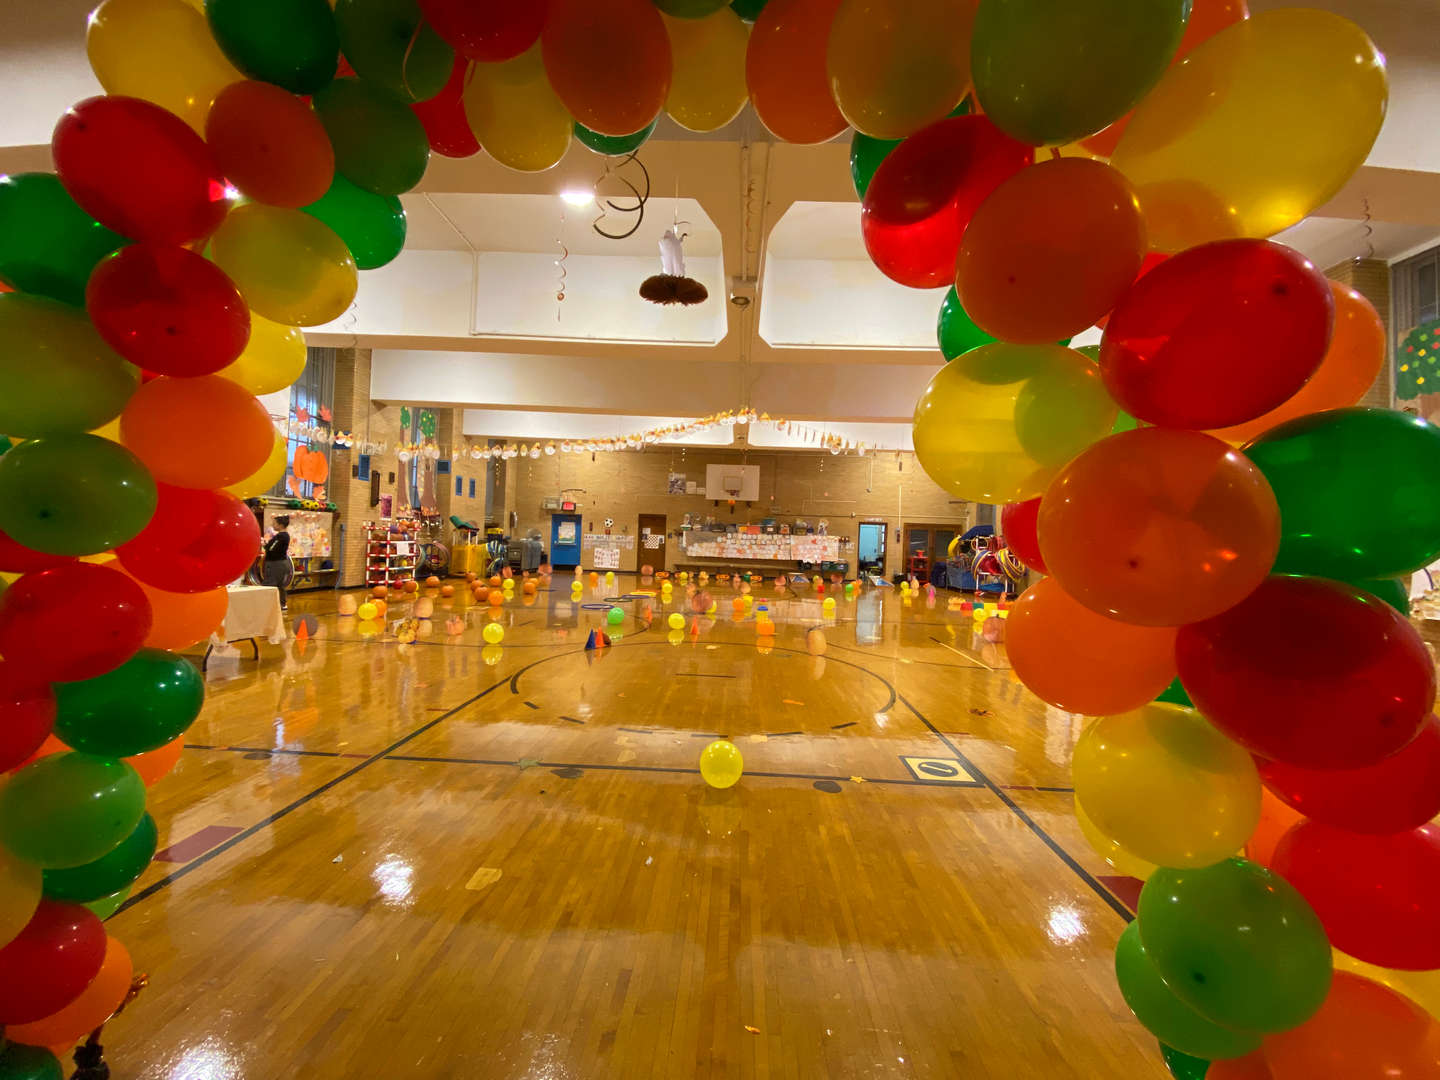 Entrance to our Fall Festival in the Gym